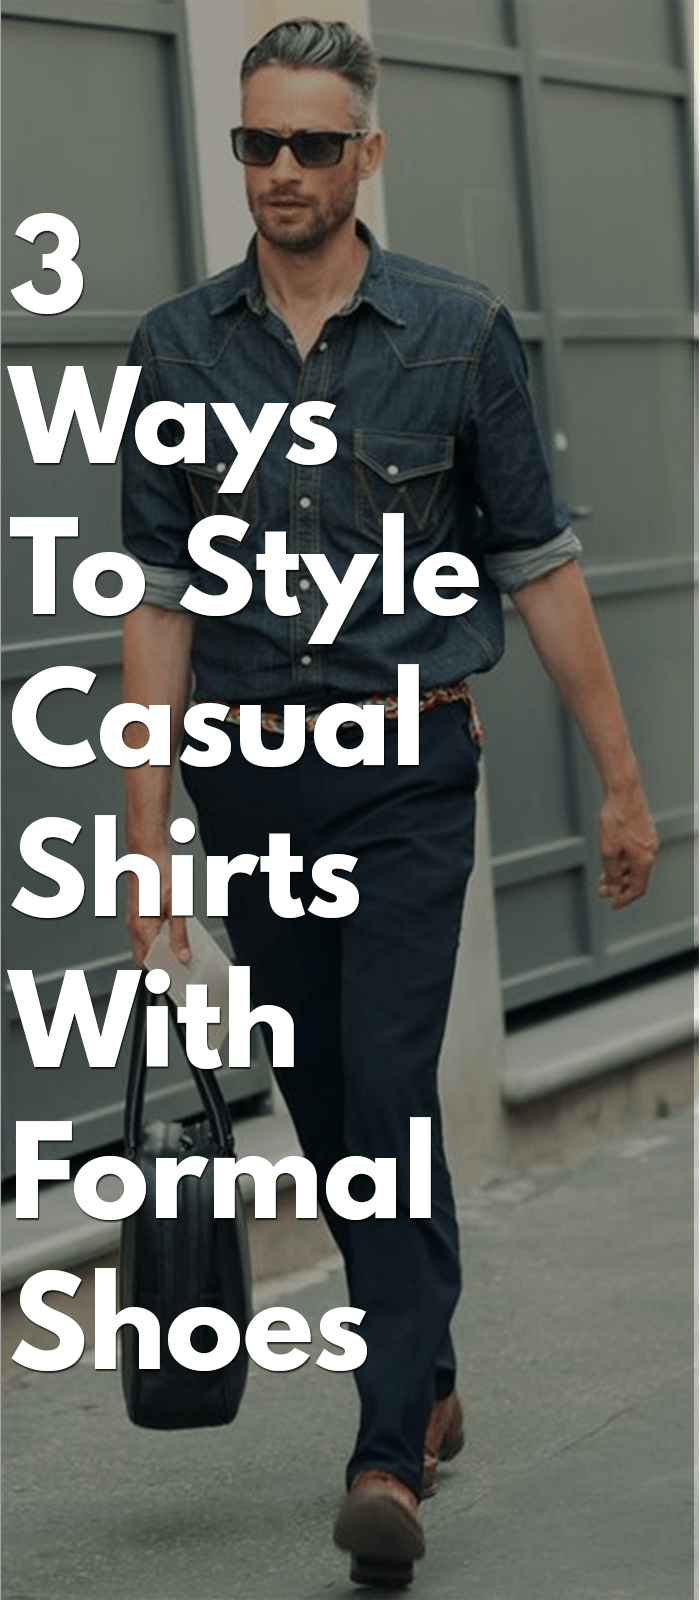 c8166614dae 3 Ways To Style Casual Shirts With Formal Shoes